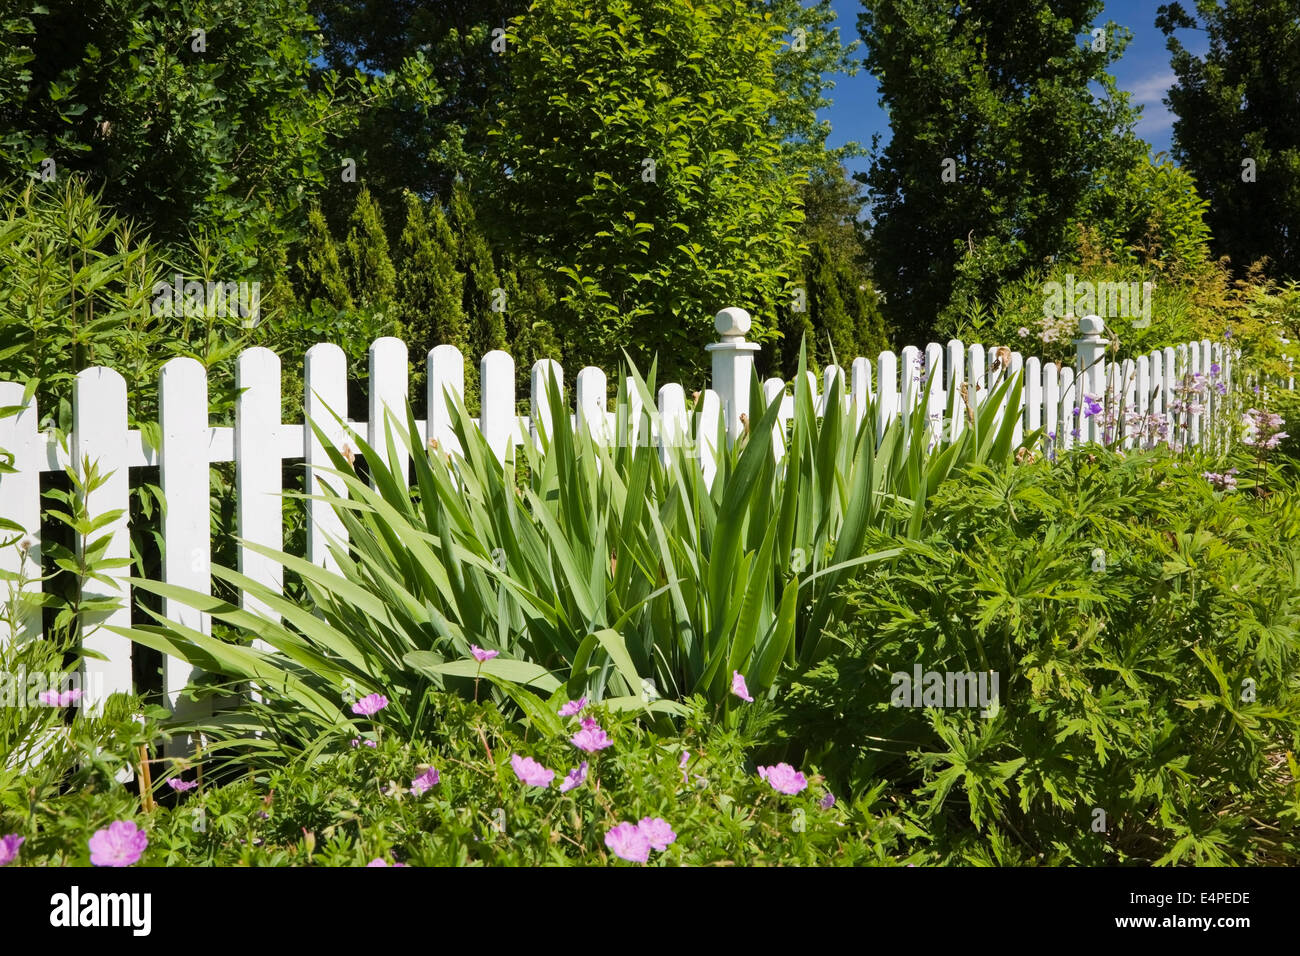 White wooden picket fence in front of a flower bed in a landscaped residential front yard garden, Quebec, Canada - Stock Image